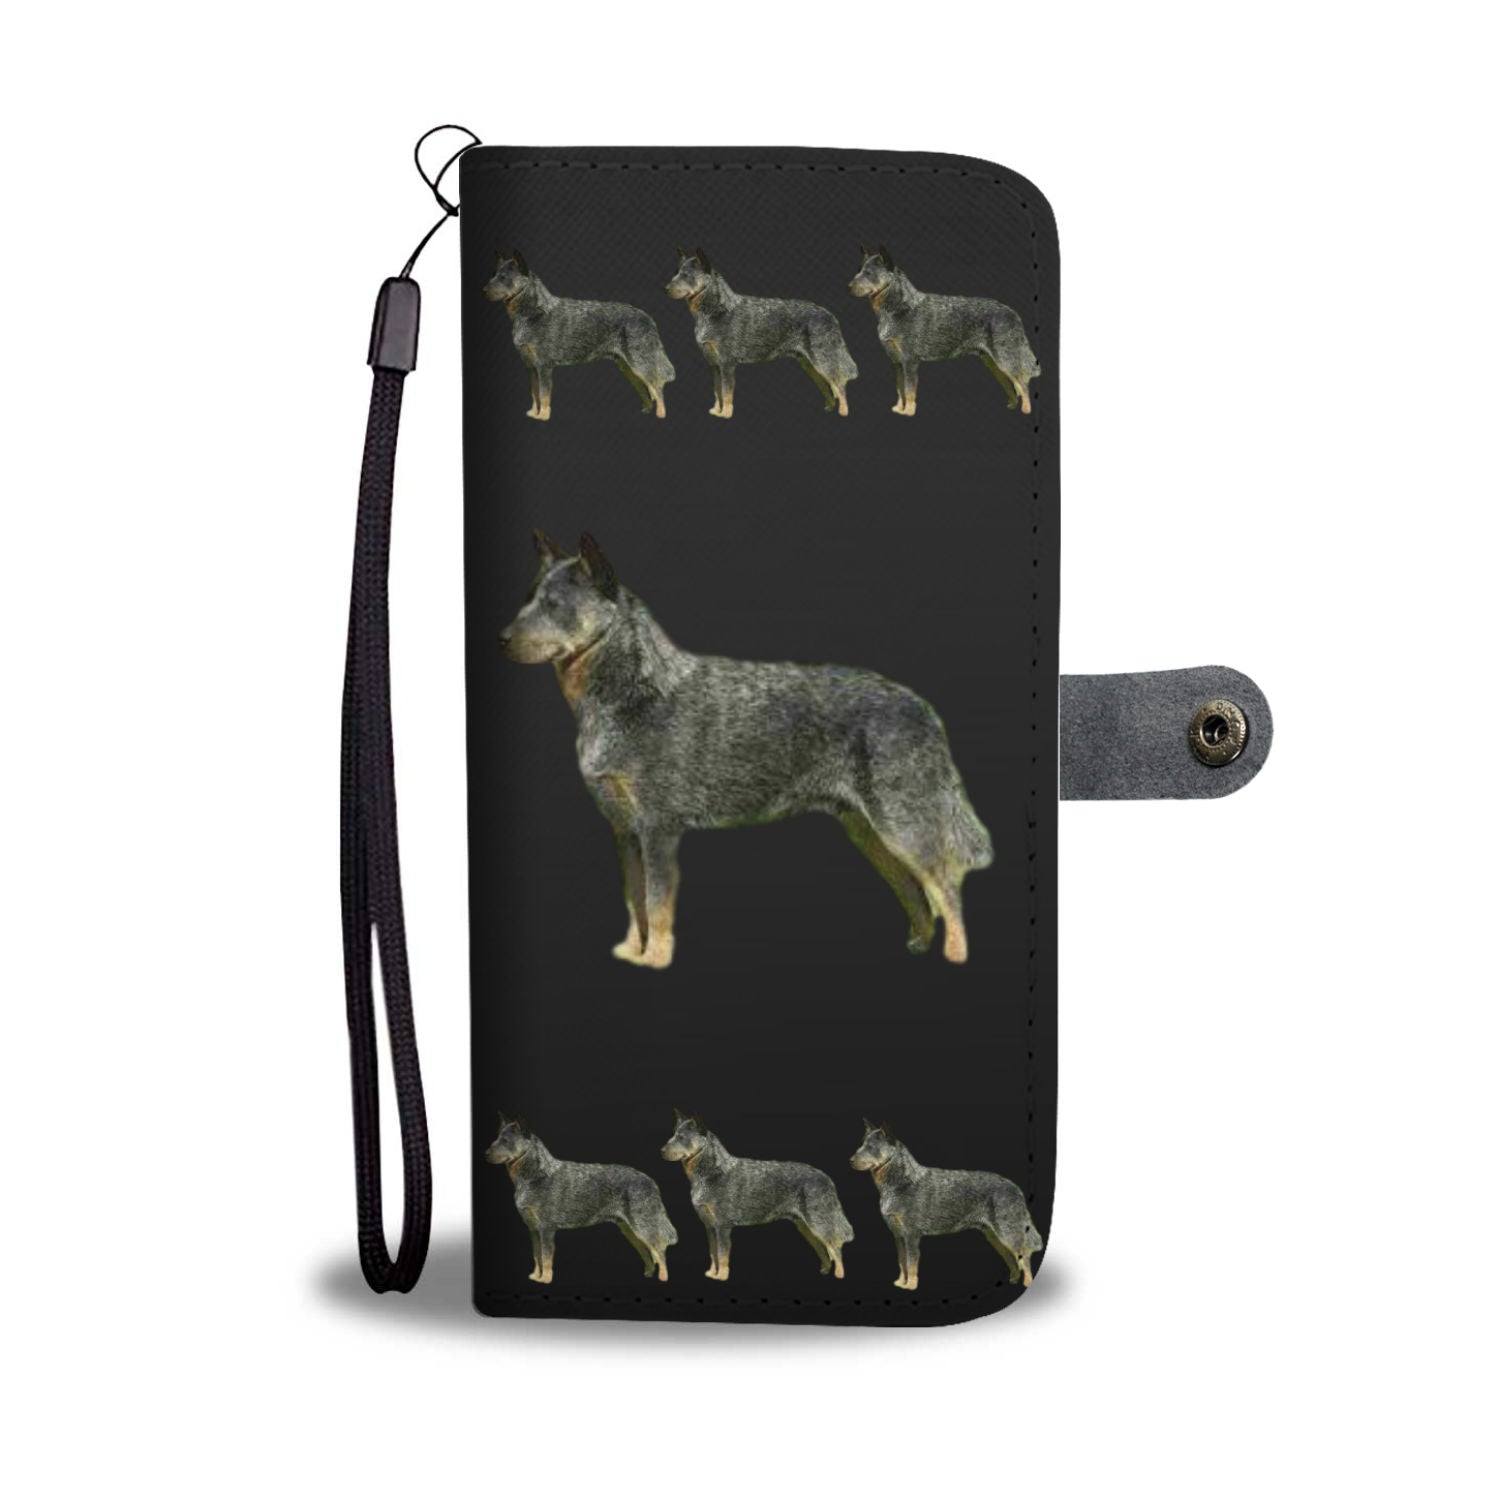 Australian Cattle Dog Phone Case Wallet - Black